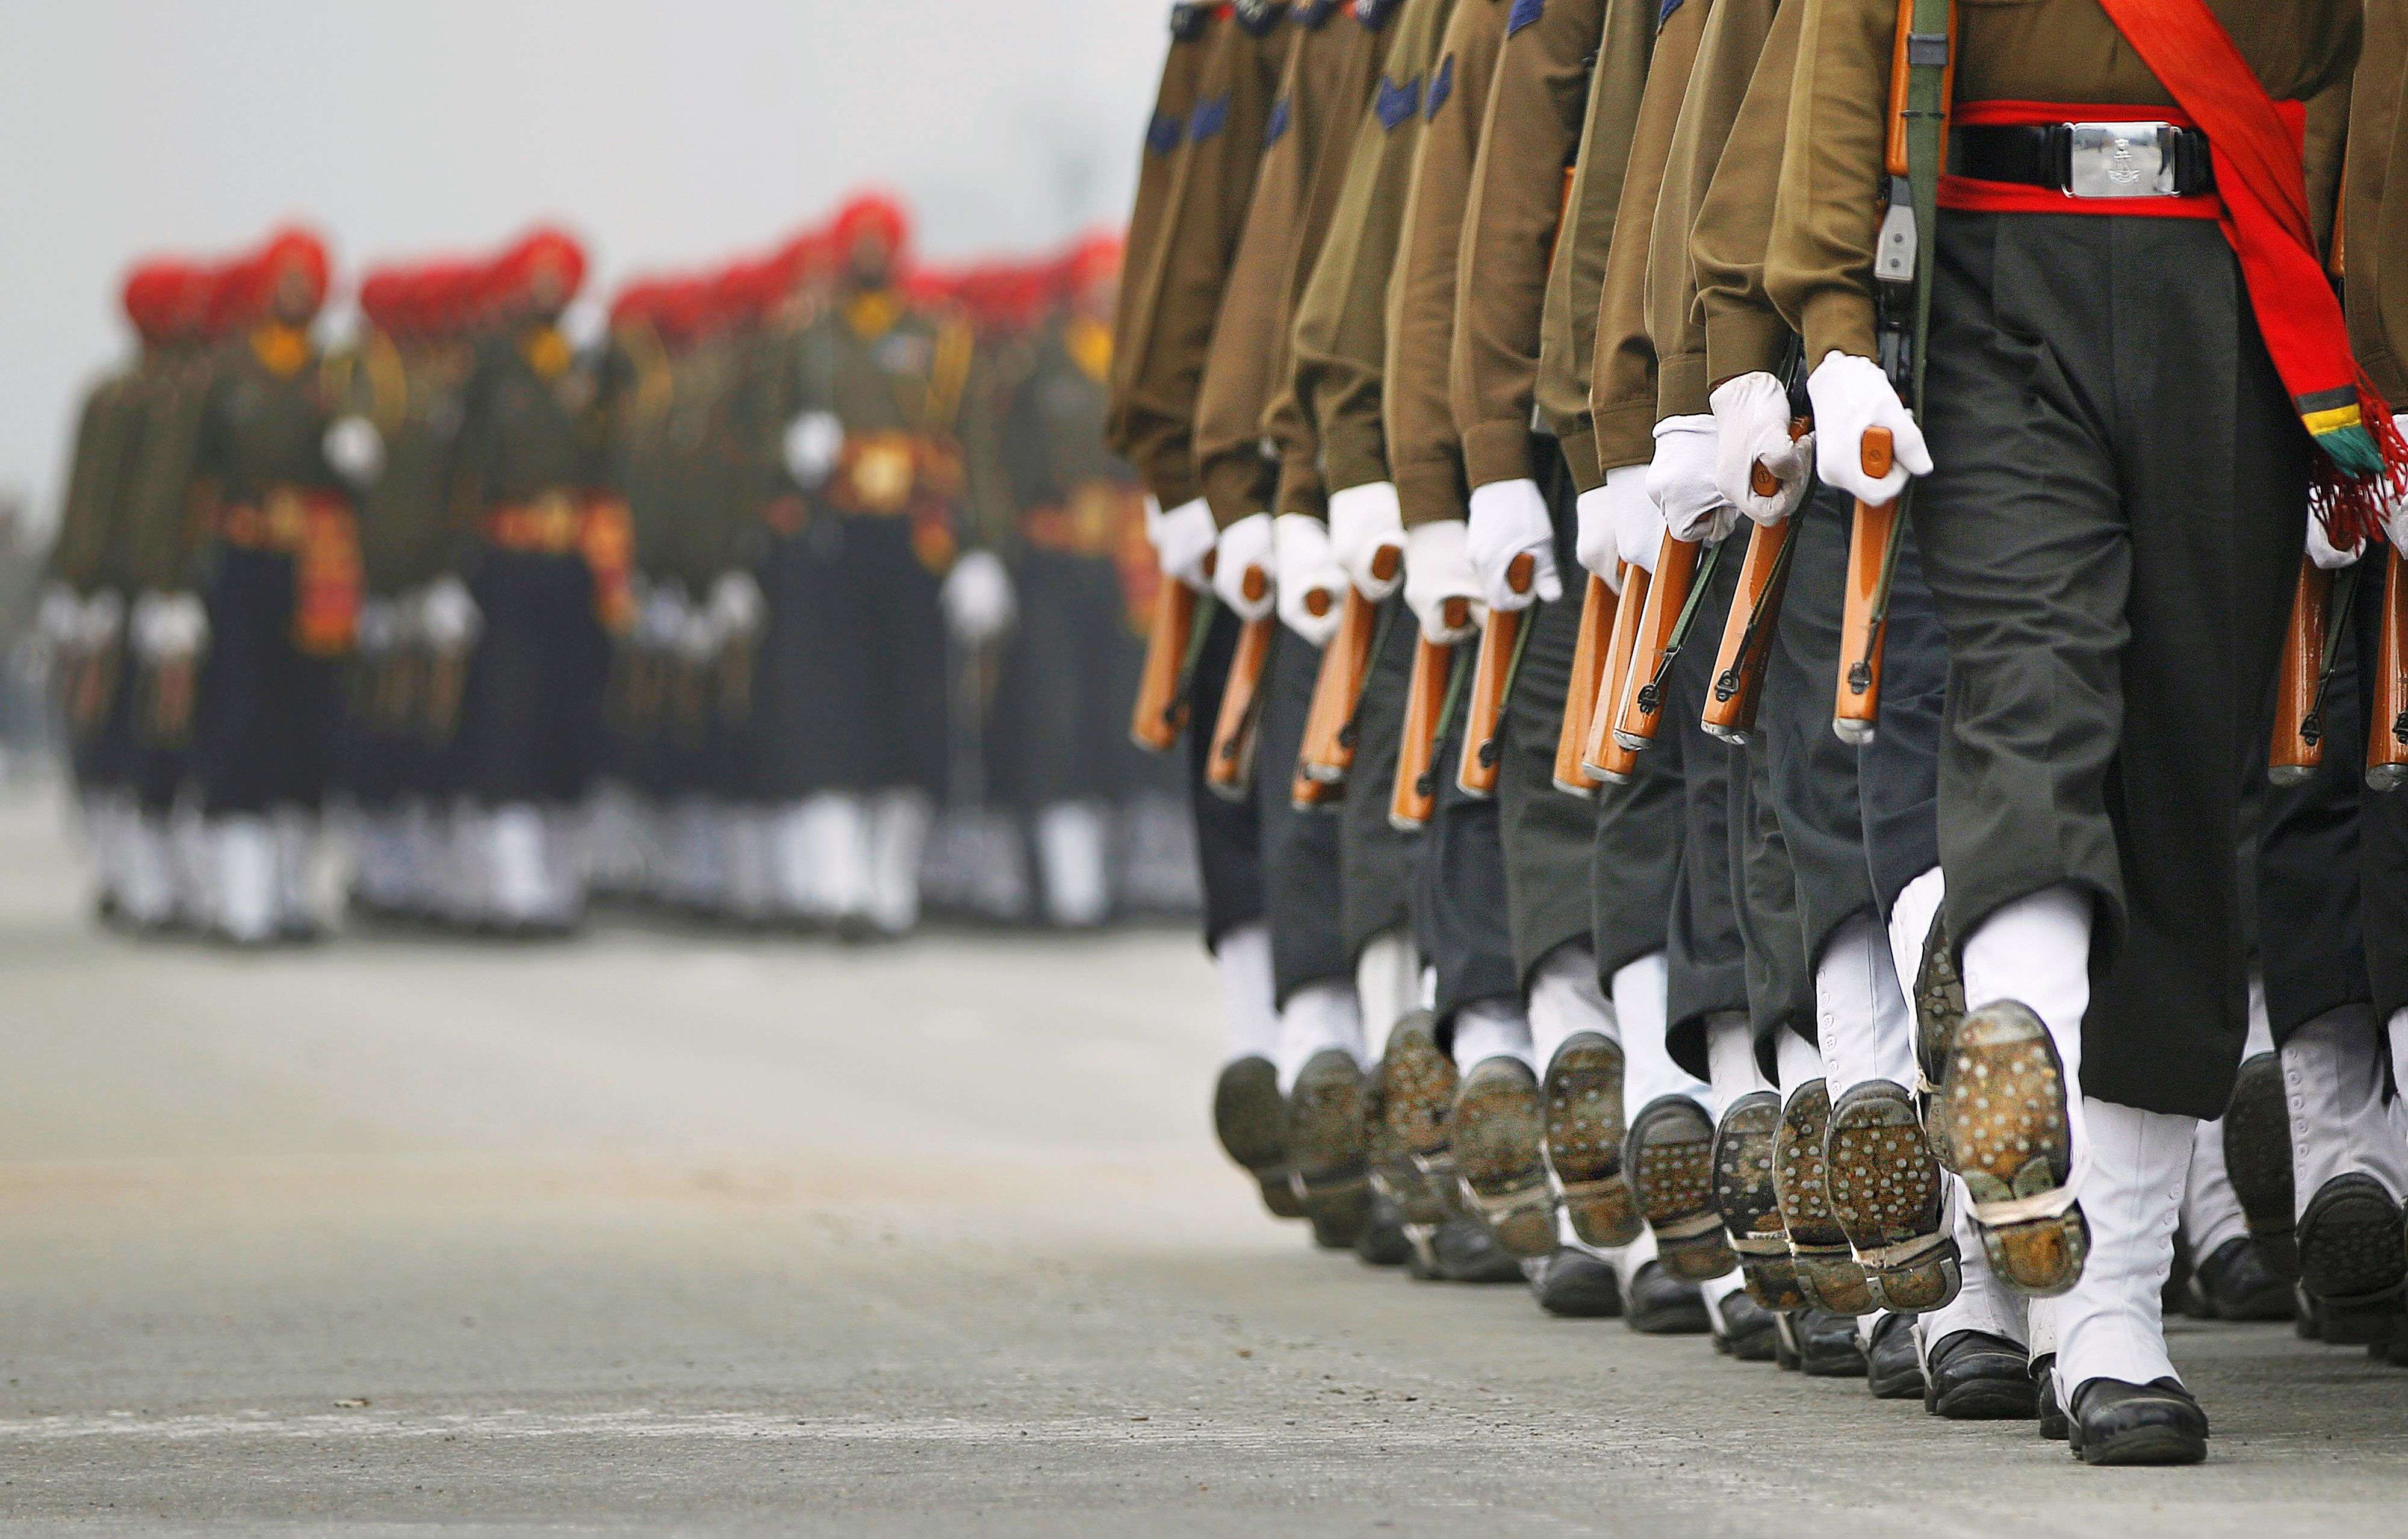 Paramilitary soldiers march during rehearsals for the upcoming Republic Day parade in New Delhi. (AP Photo/Altaf Qadri)